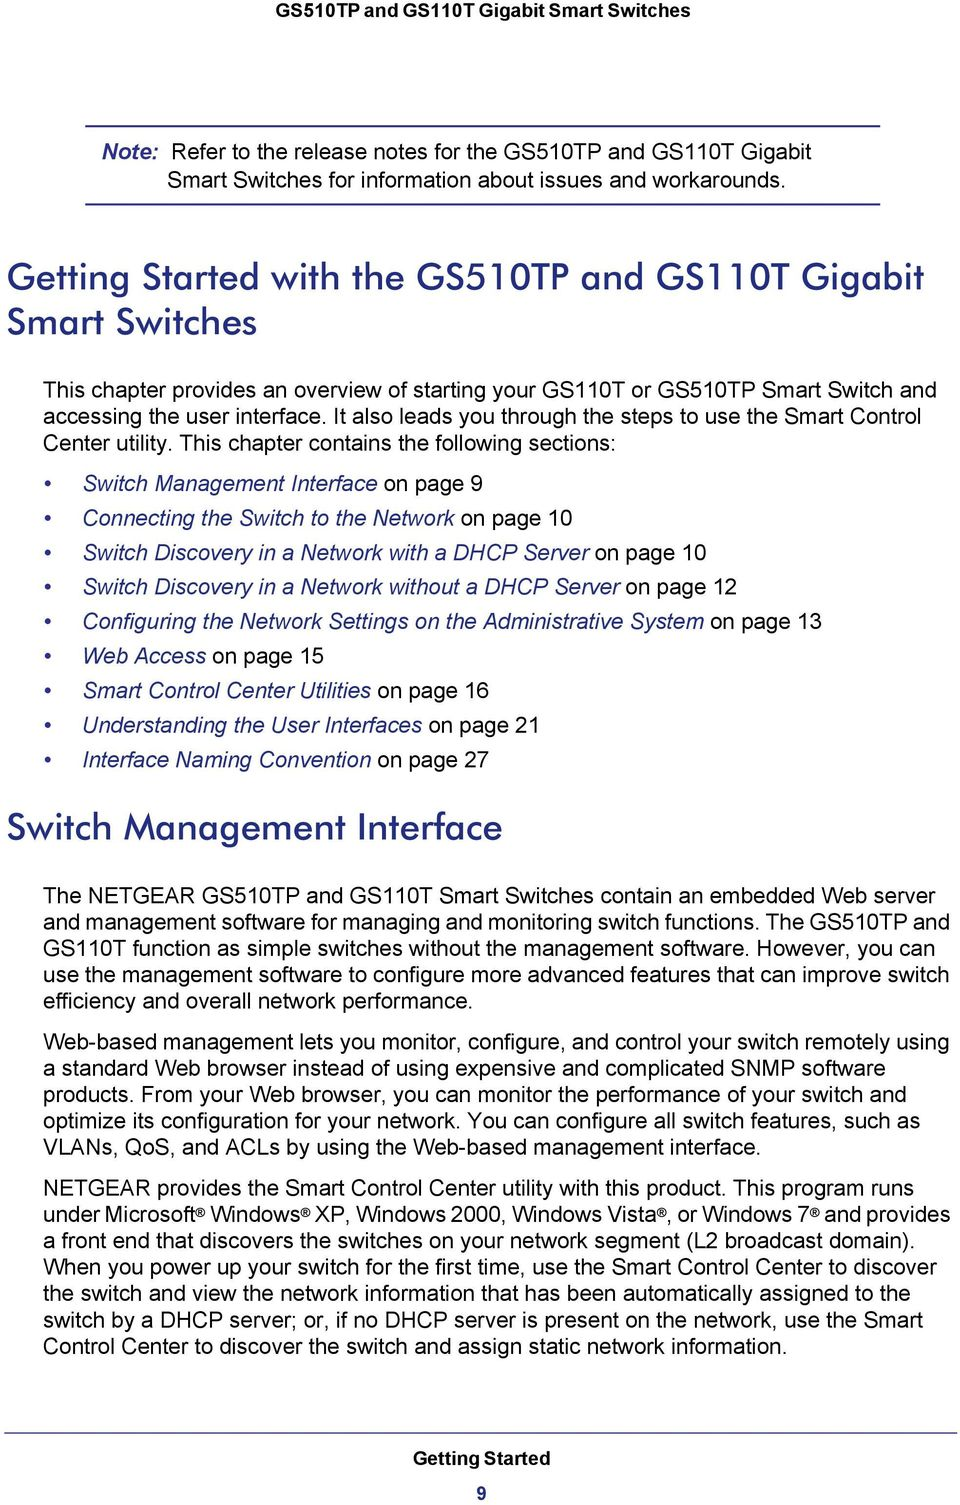 GS510TP and GS110T Gigabit Smart Switches - PDF